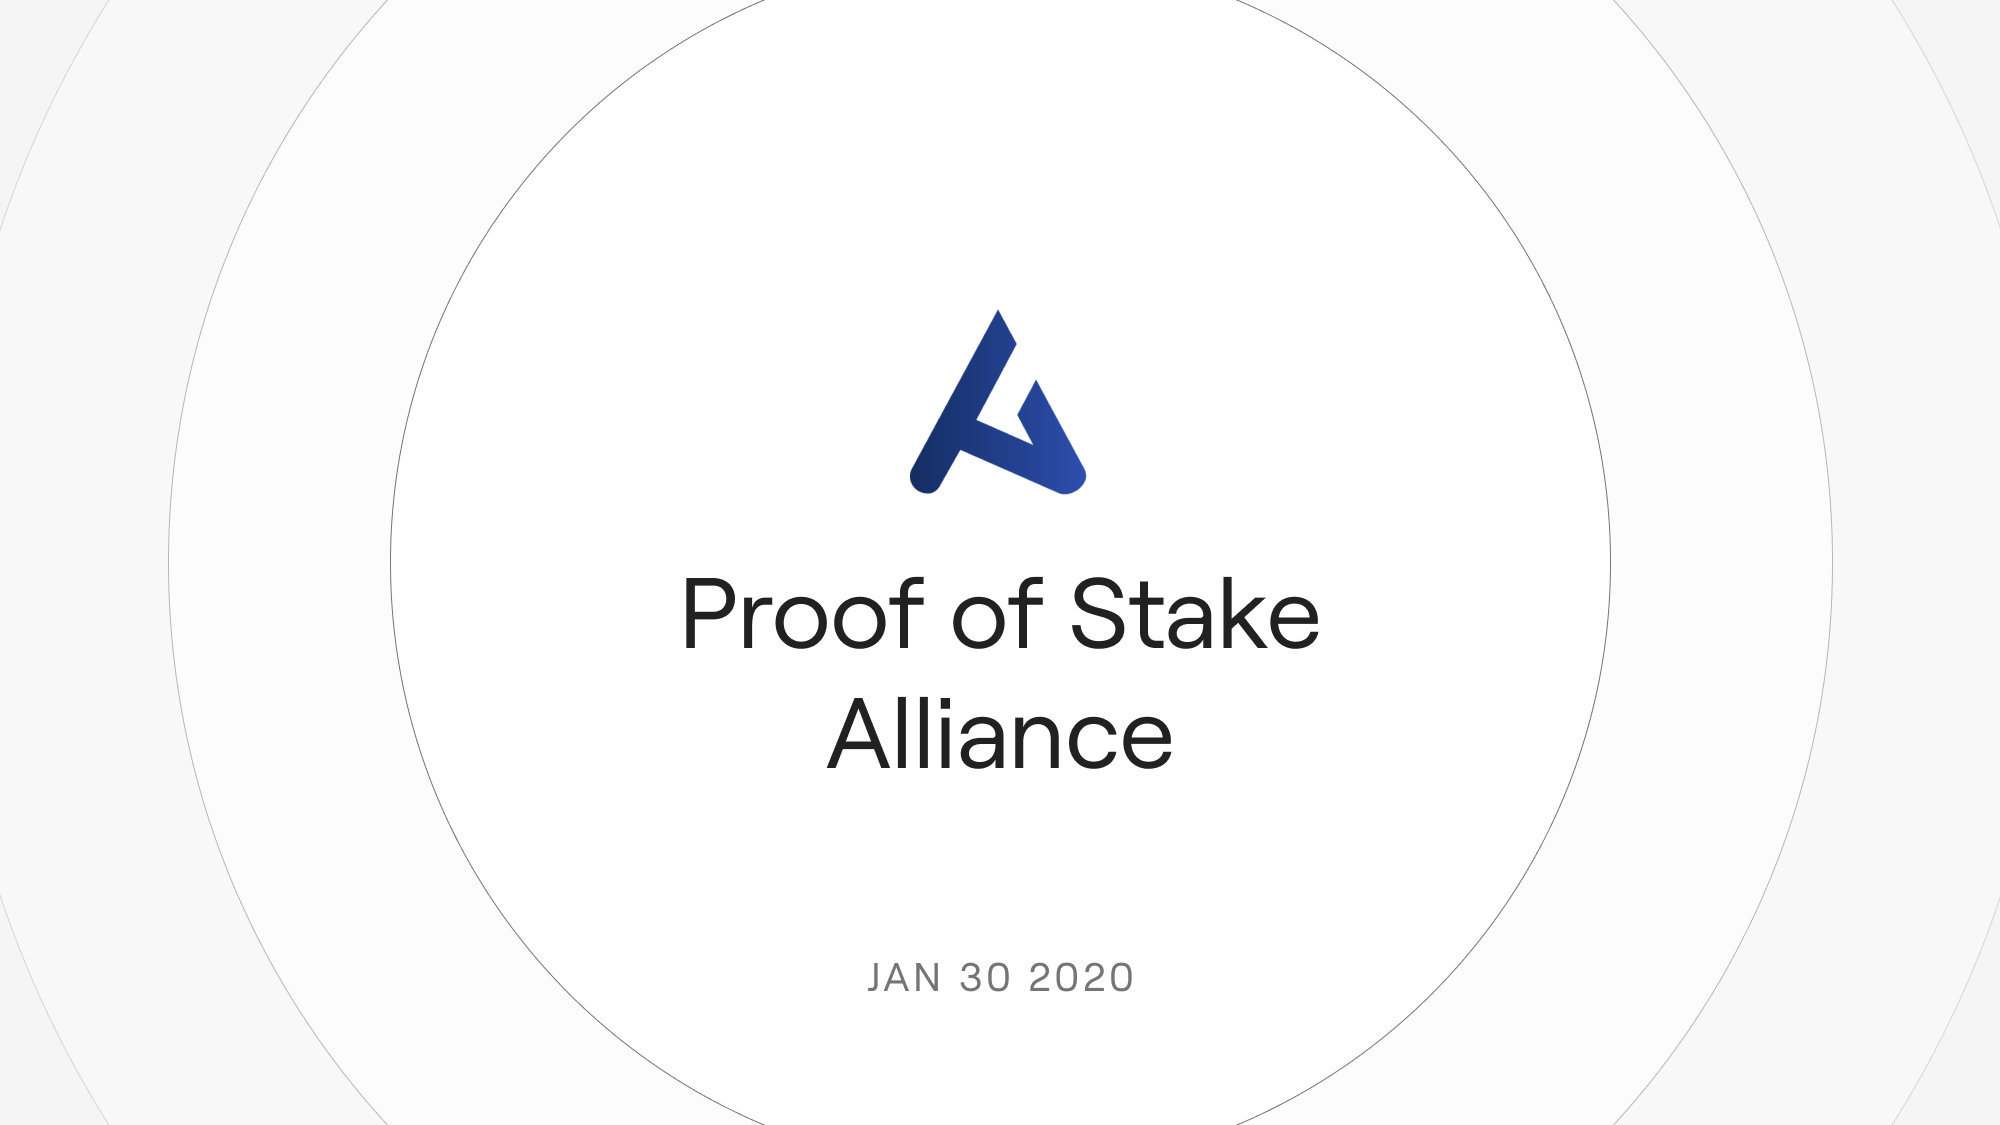 Coinbase Custody and Bison Trails join Proof of Stake Alliance